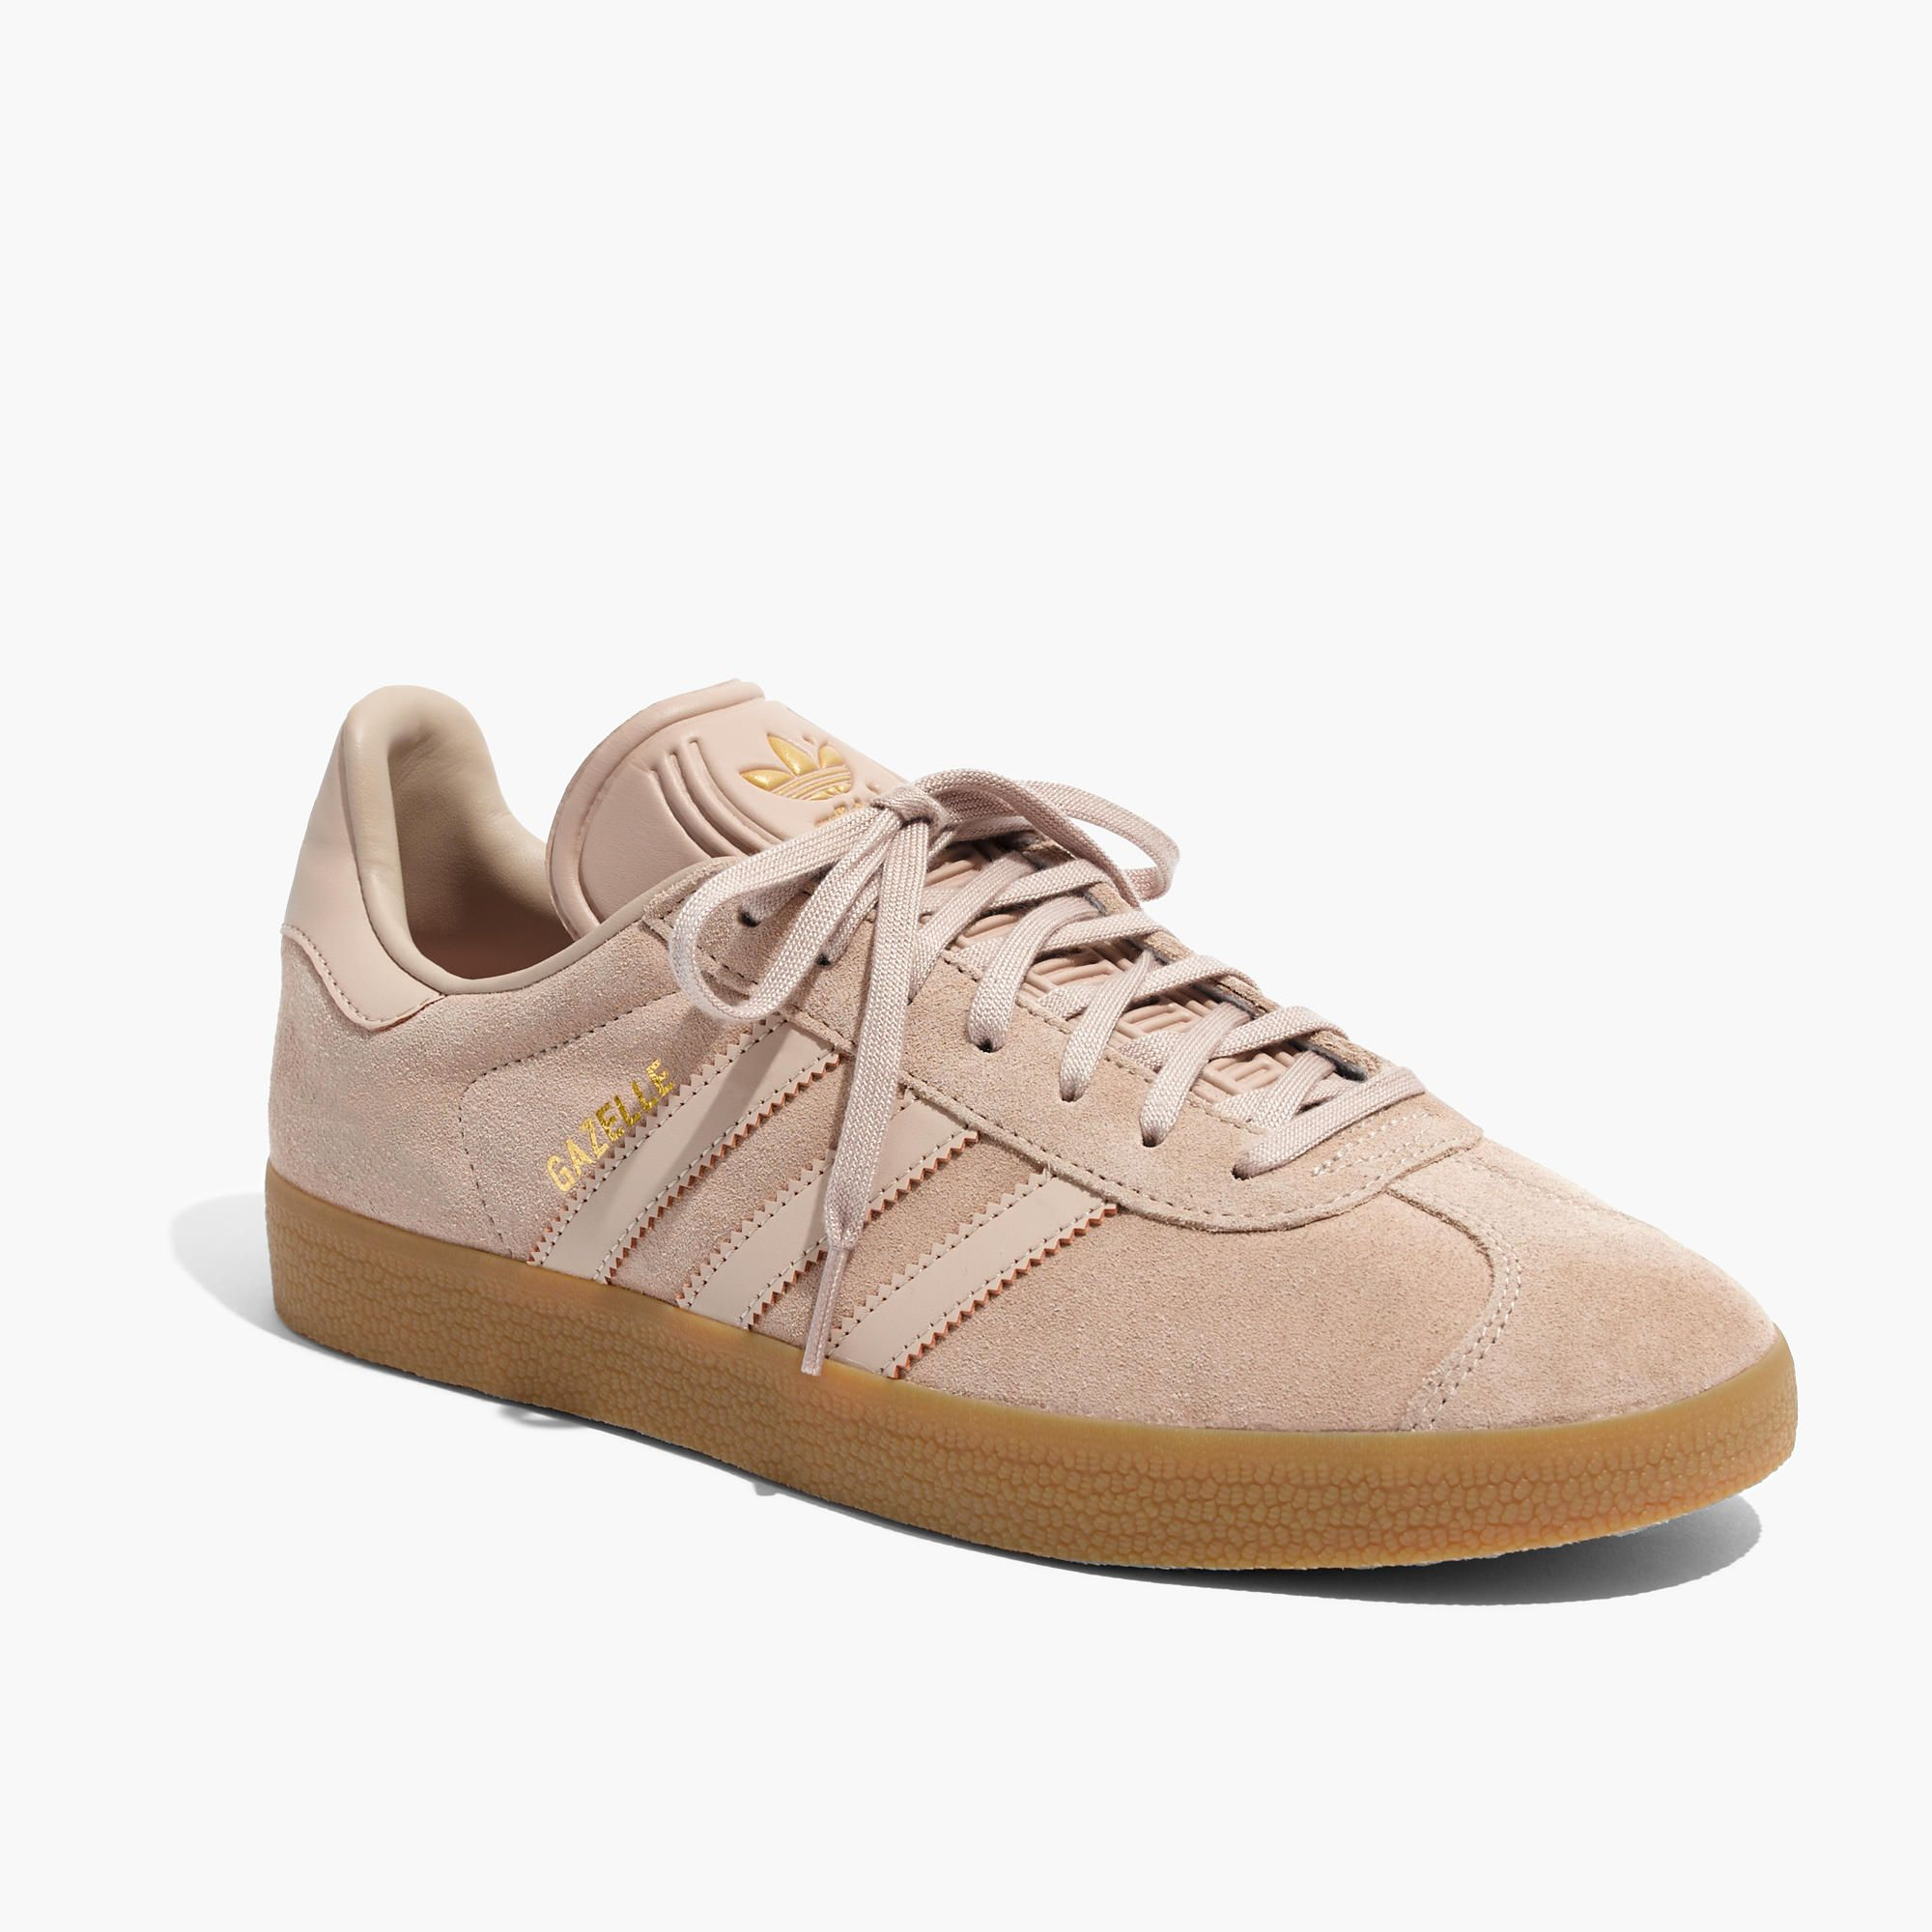 low cost 3b6d0 d2f82 Adidas® Gazelle® Lace-Up Sneakers in Tan | dope in 2019 ...